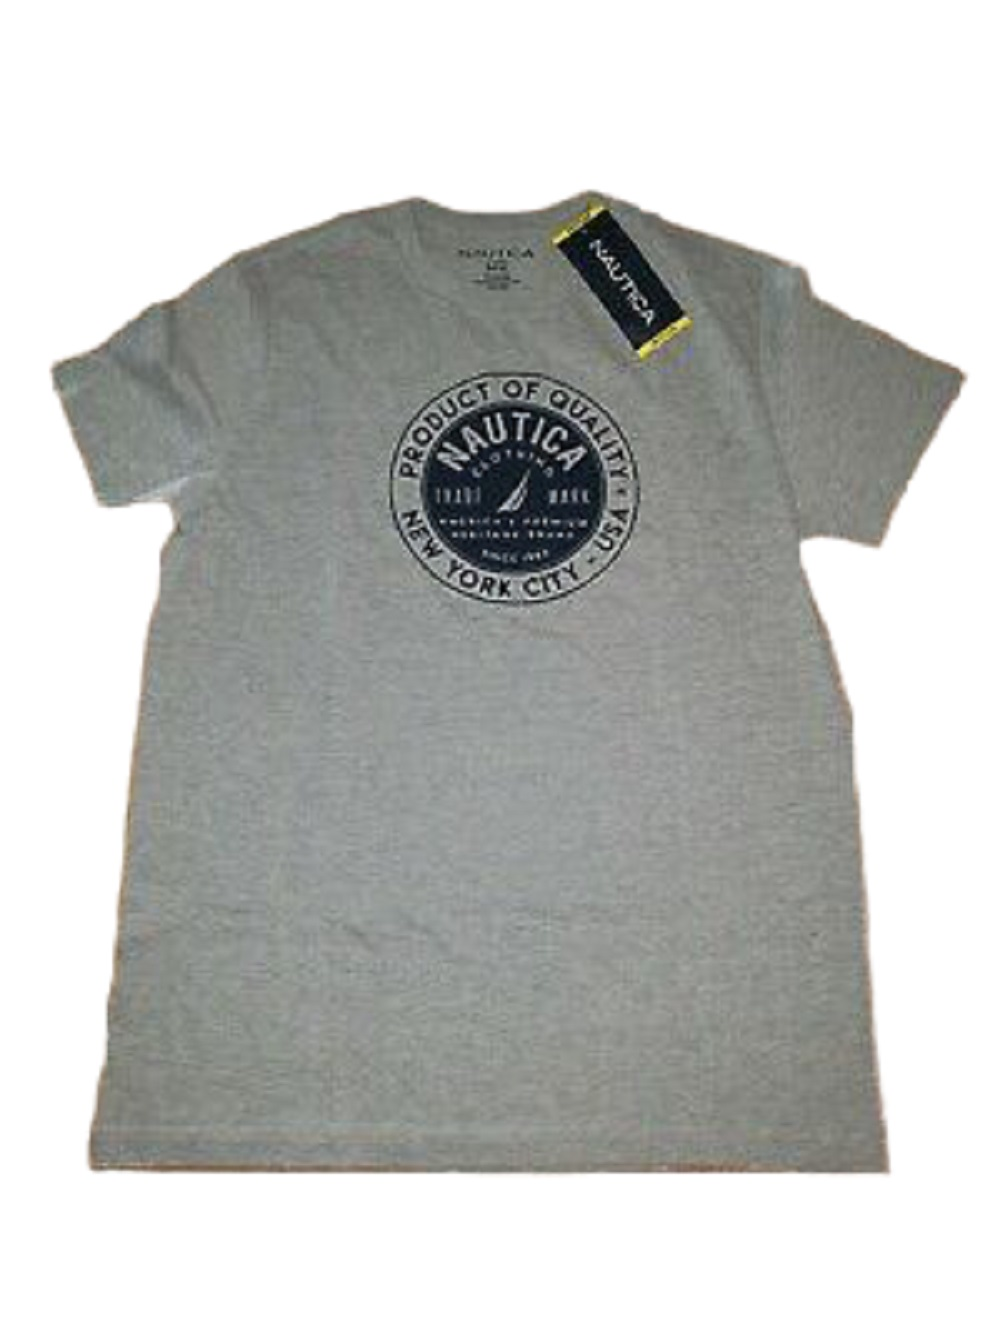 Nautica Mens Product of Quality New York Tshirt in Fog Heather, Size Large